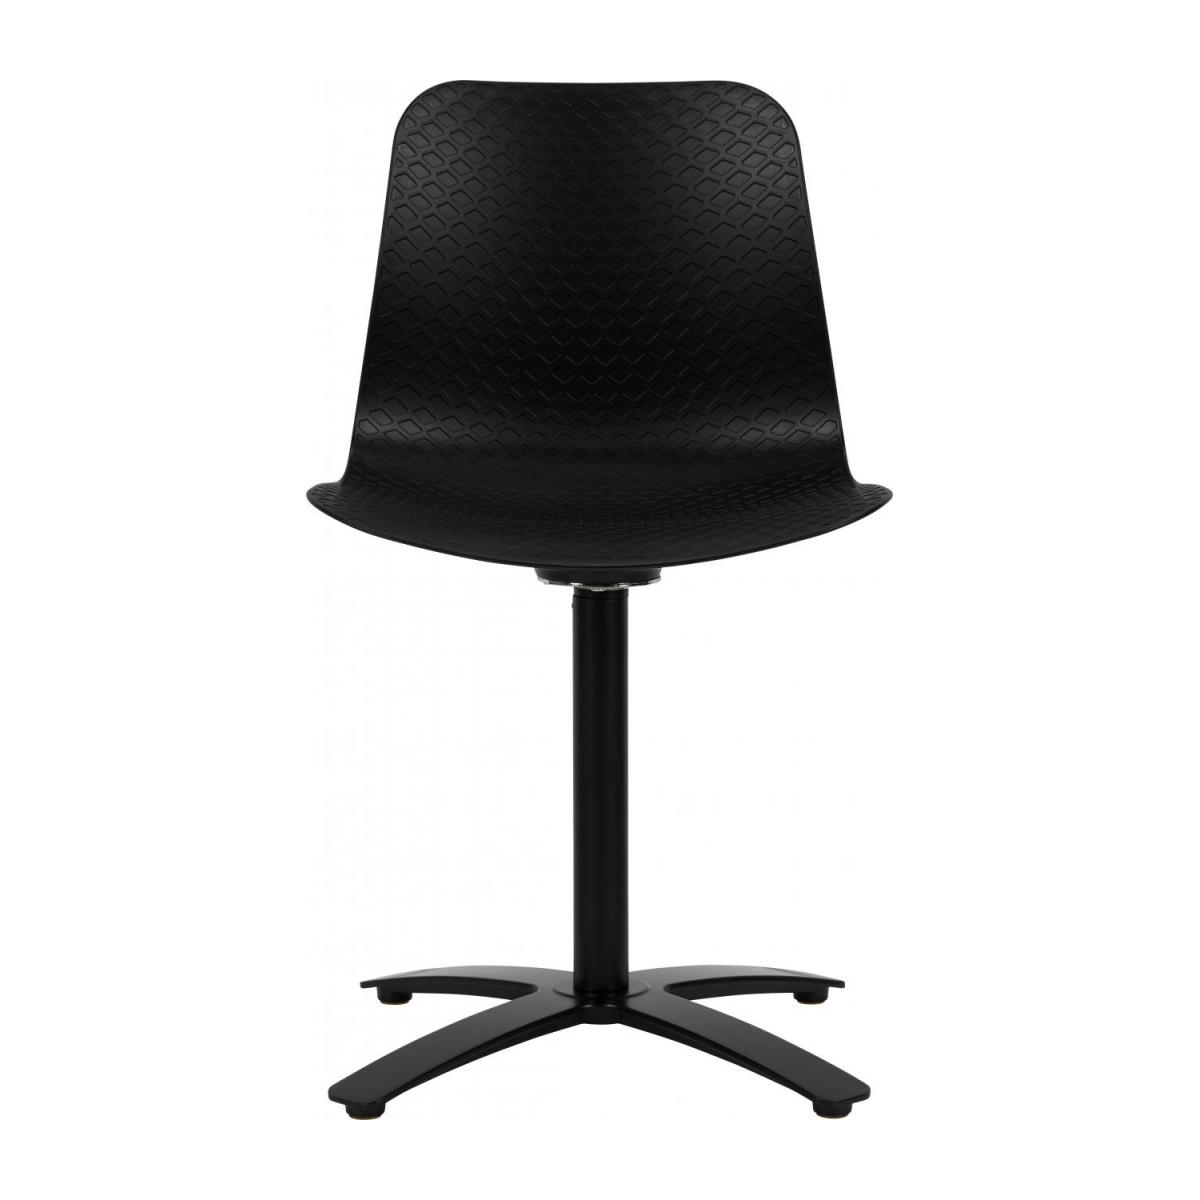 Black office chair in polypropylene n°3